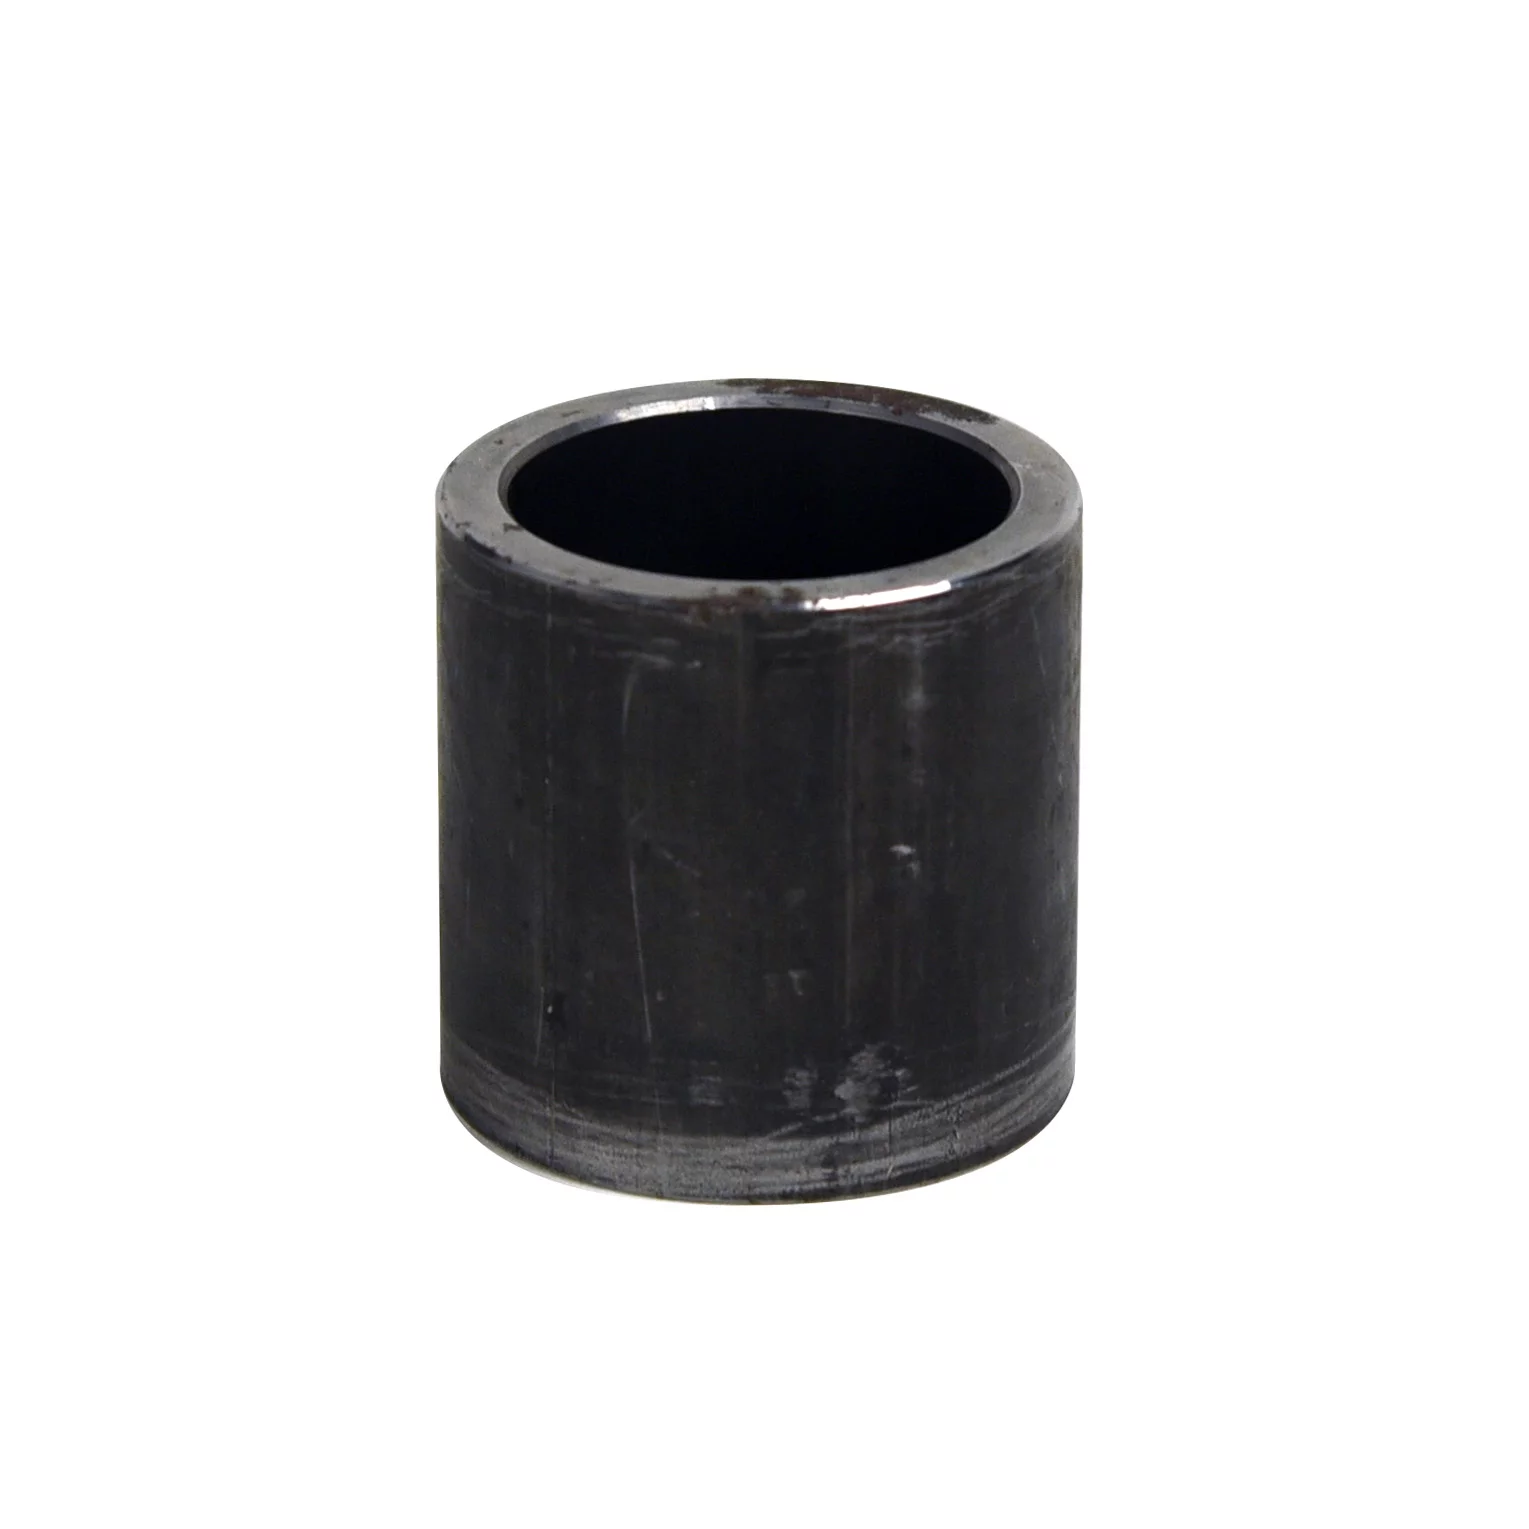 Wheeltronics BH-7792-58 Sheave Spacer, Medium - Two Inches Tall - OEM# 1-0943 - Fits model 12407